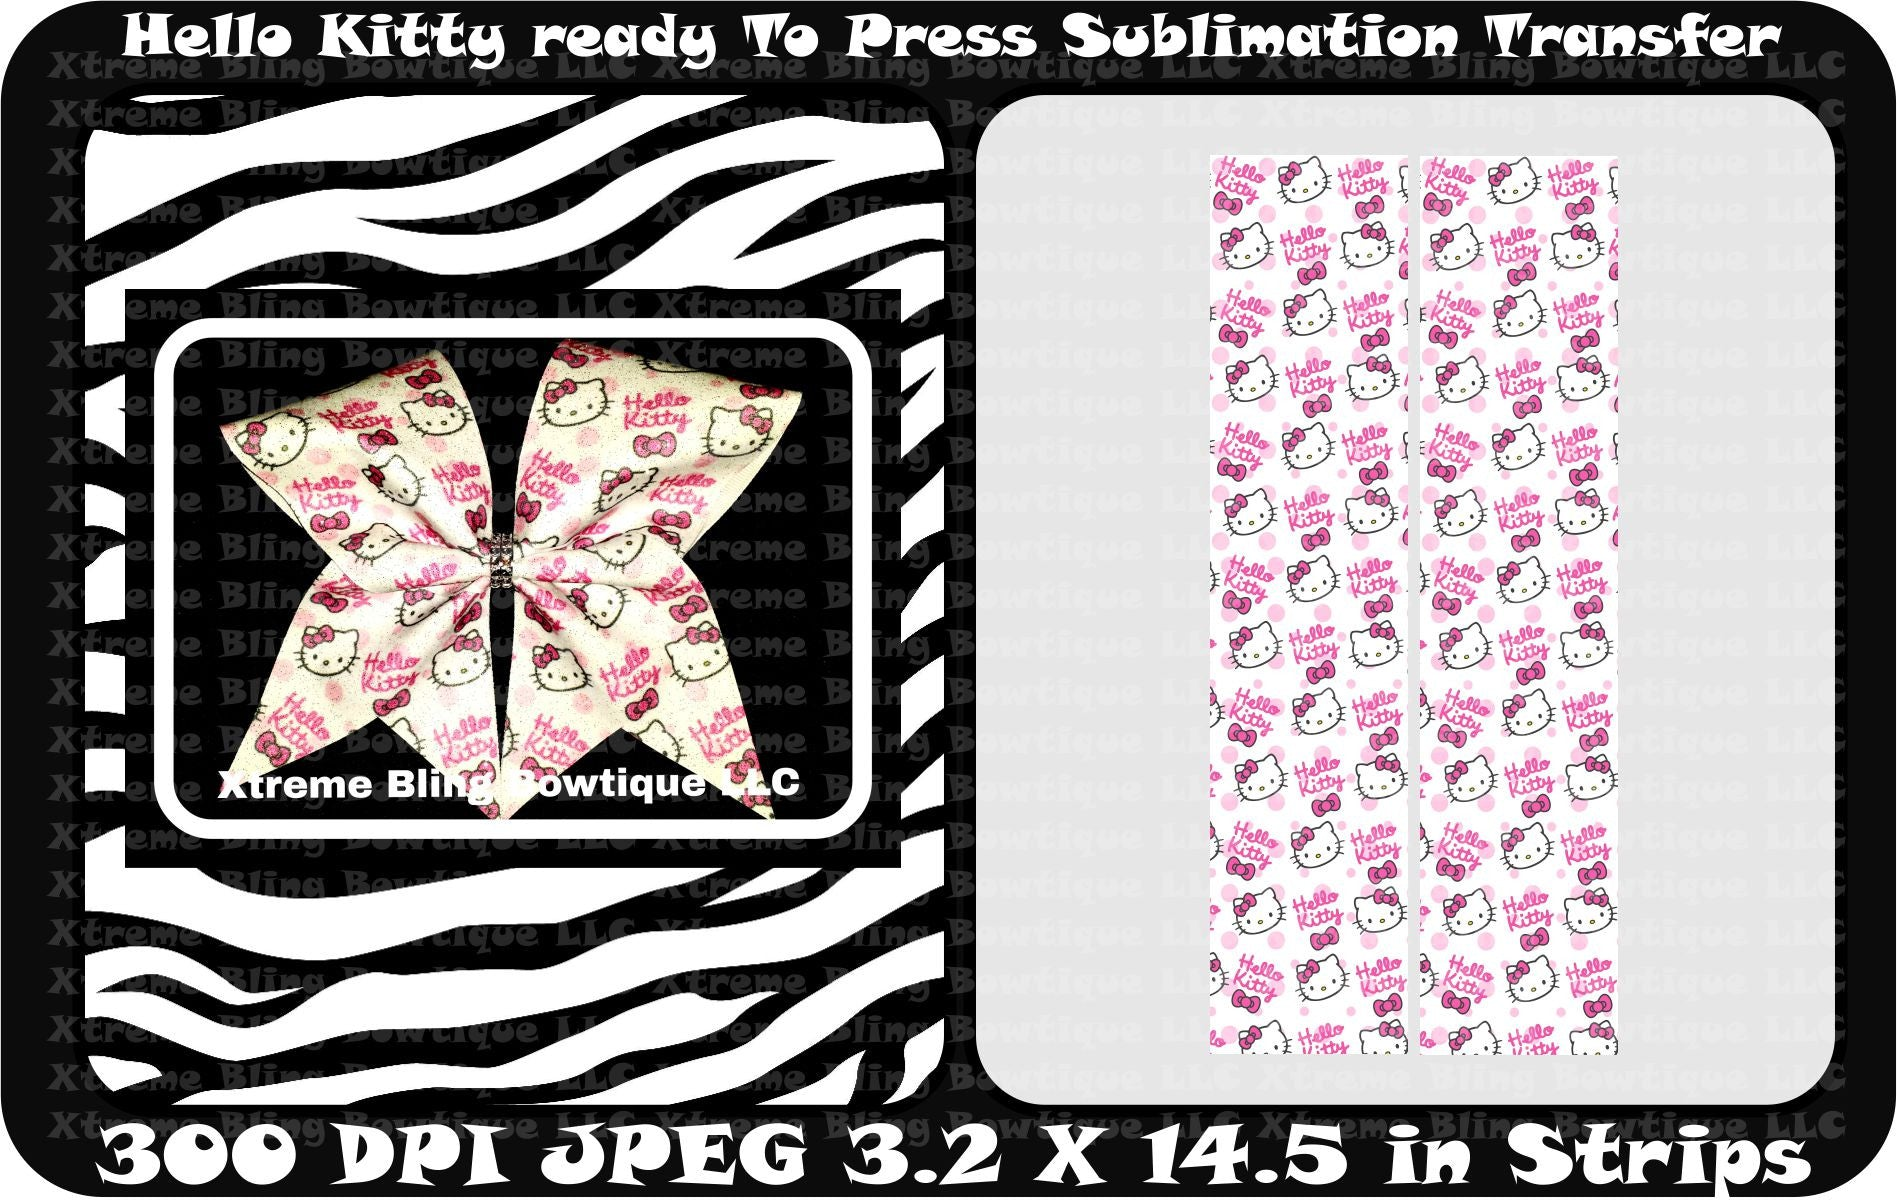 Hello Kitty Ready to Press Sublimation Bow Strips